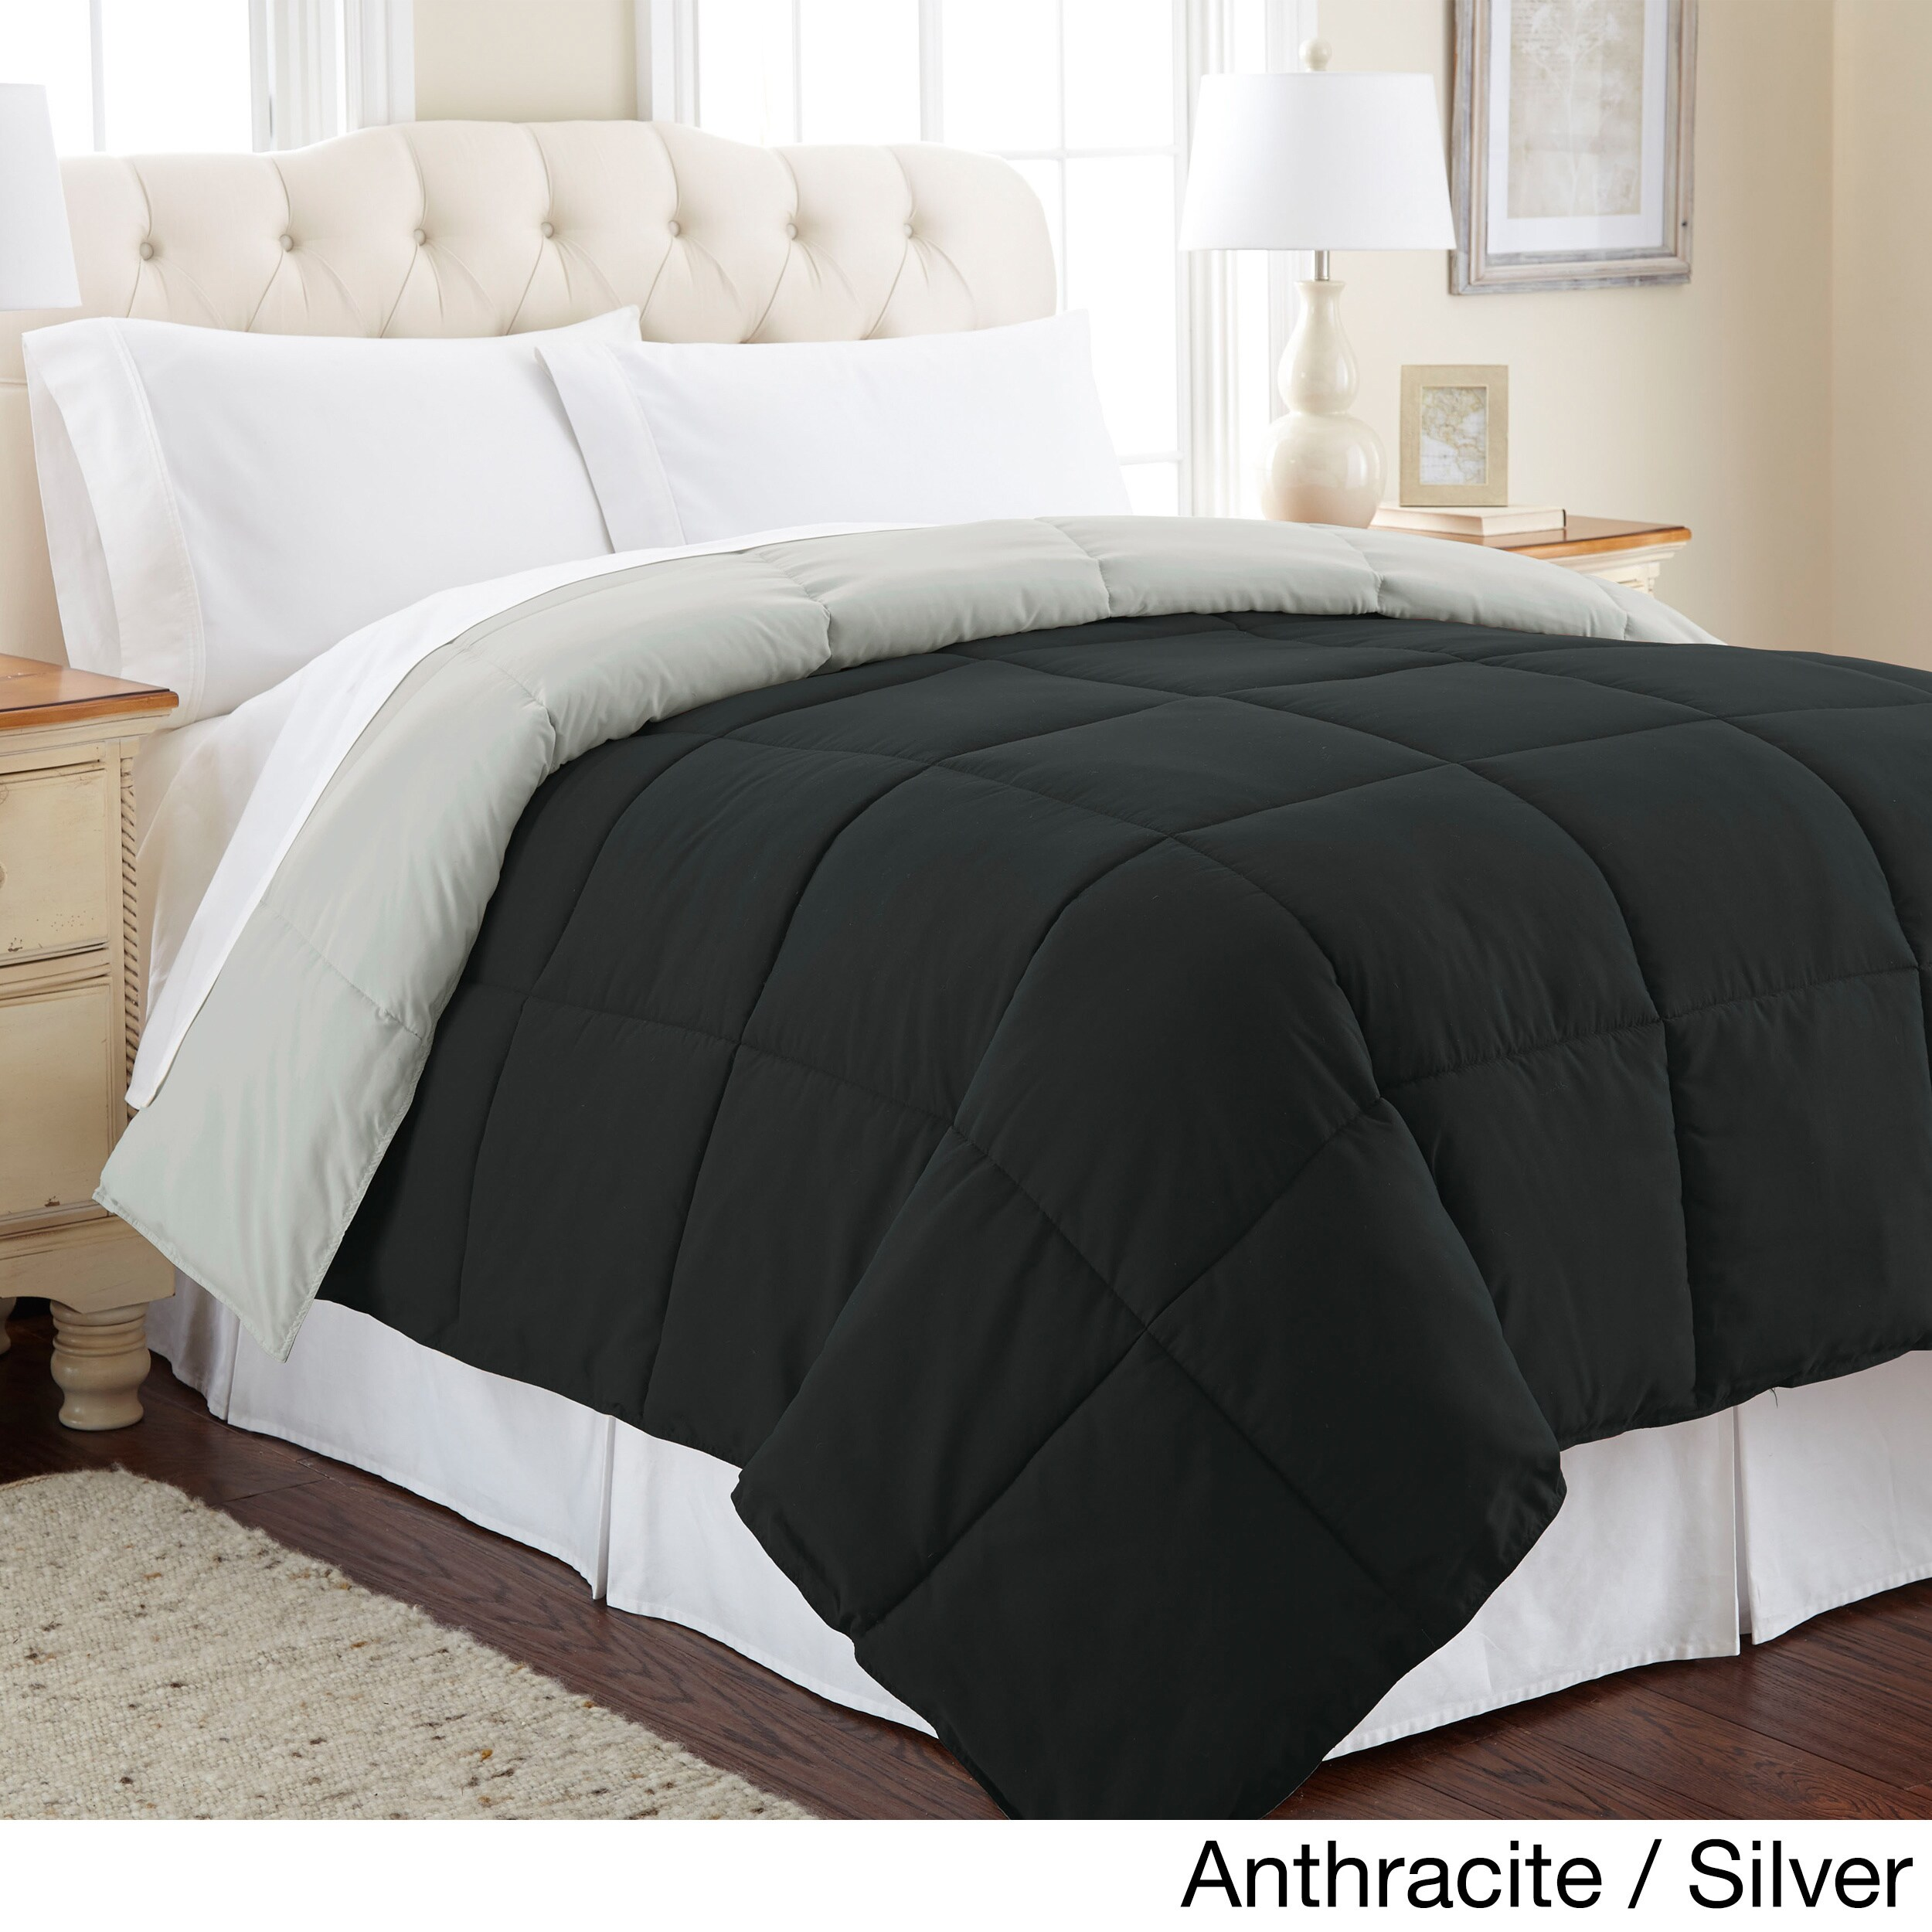 california bedding twin amazon sale meaning alternative sets comforter best king queen down